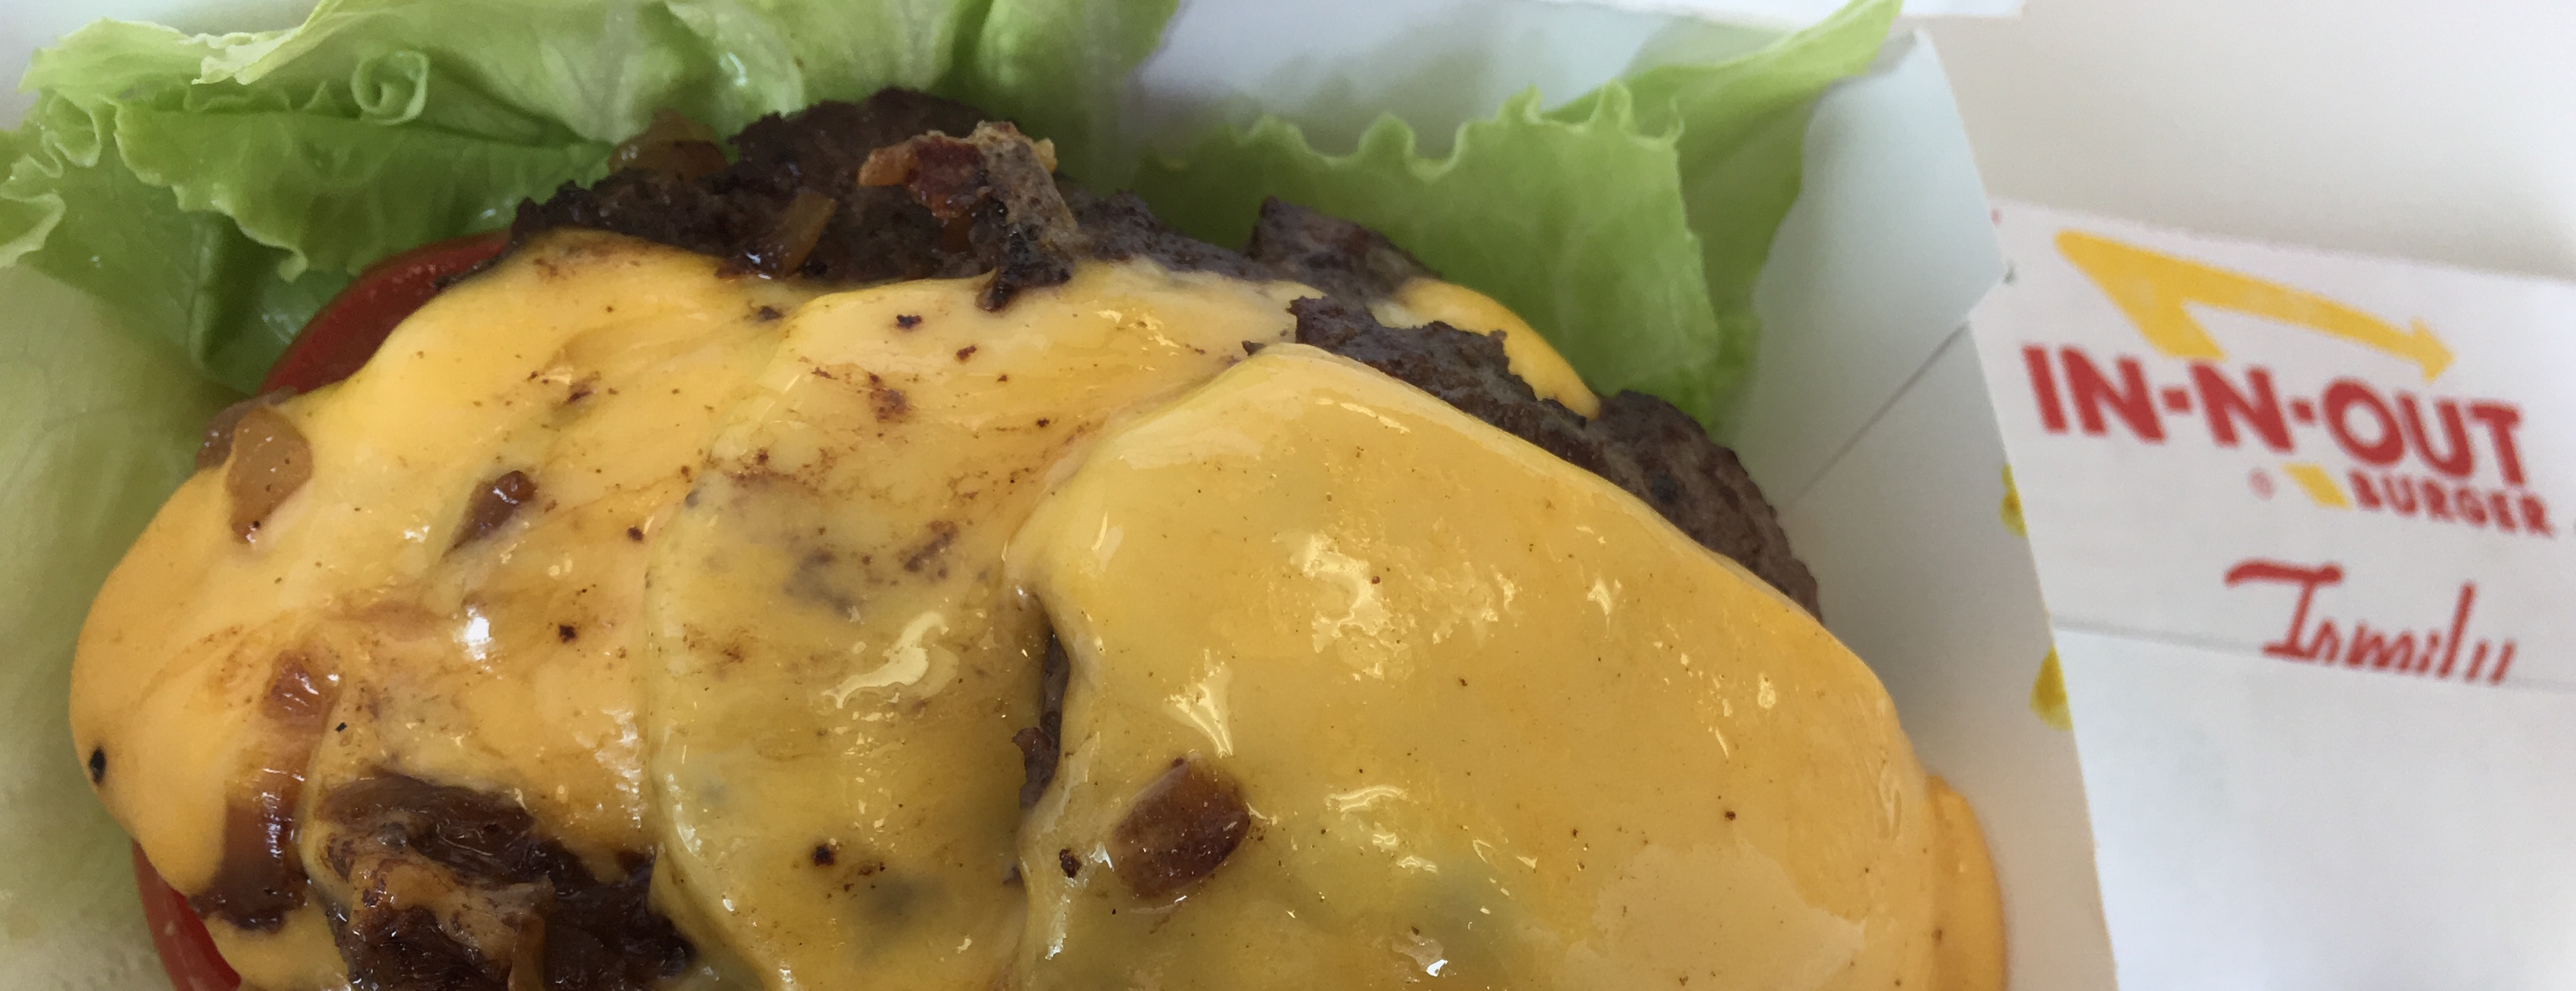 Low Carb In-N-Out Burger Protein Style (Featured Image)